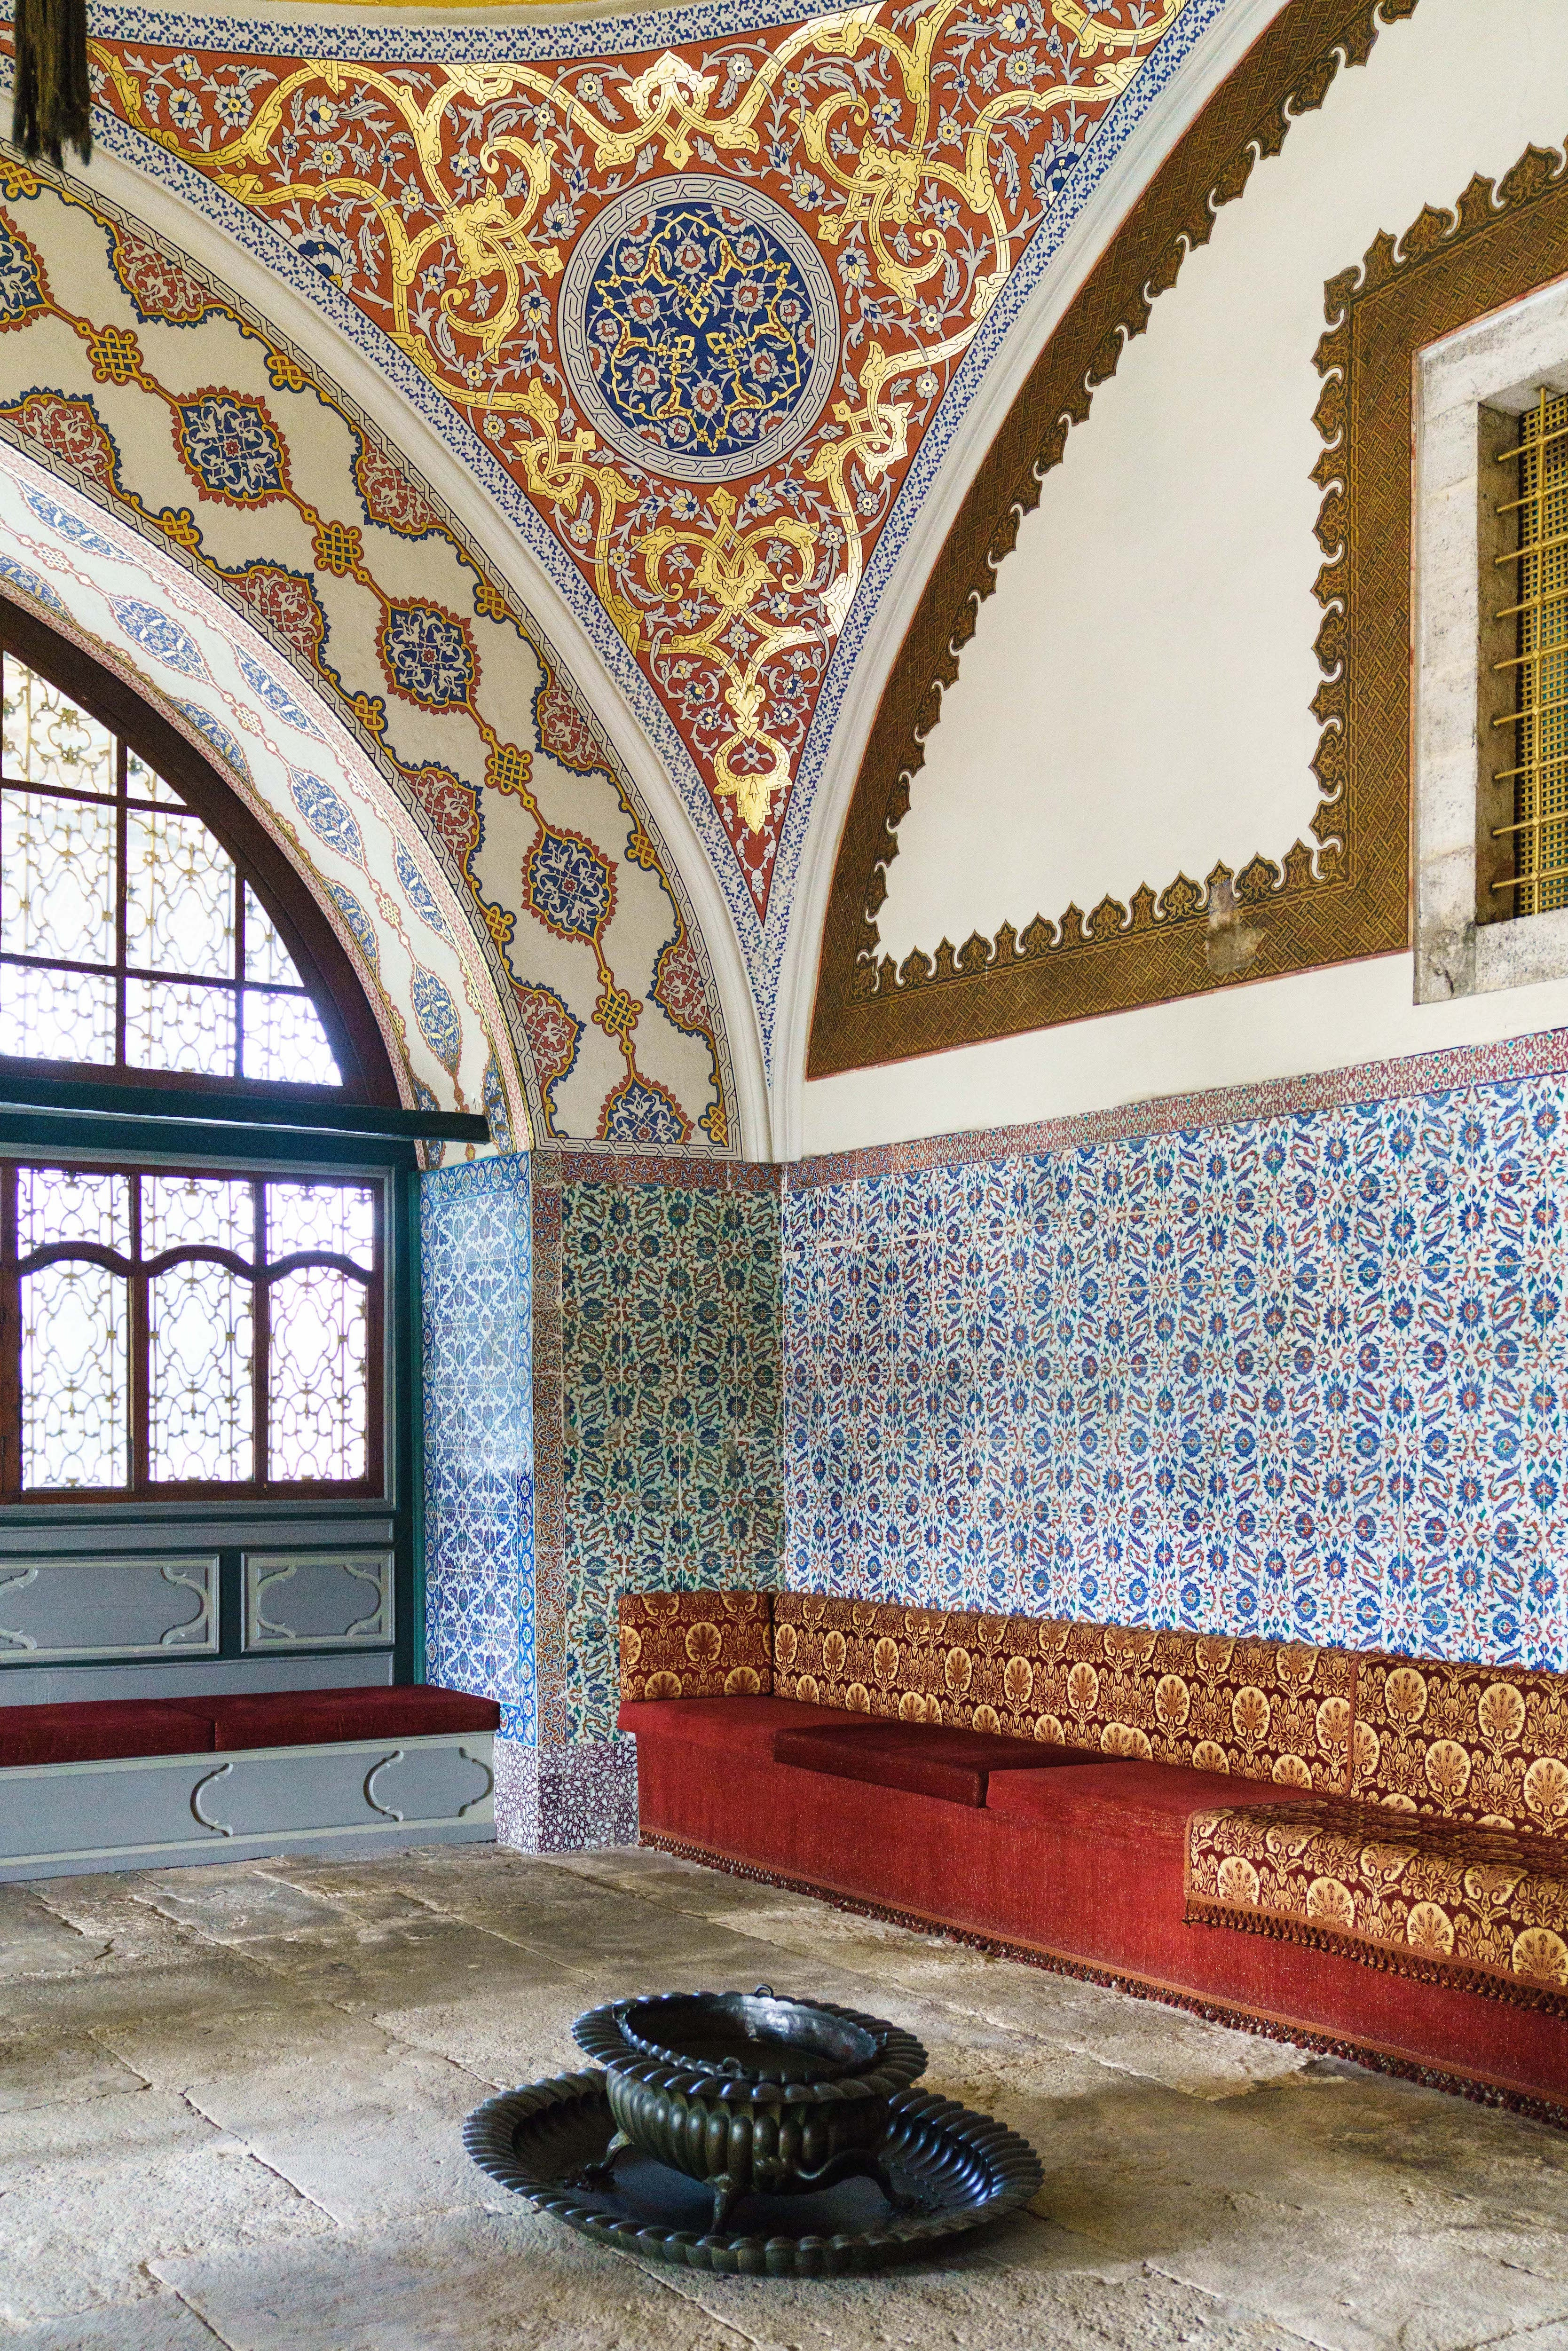 The Imperial Council of the Topkapi Palace is lined with Iznik tiles